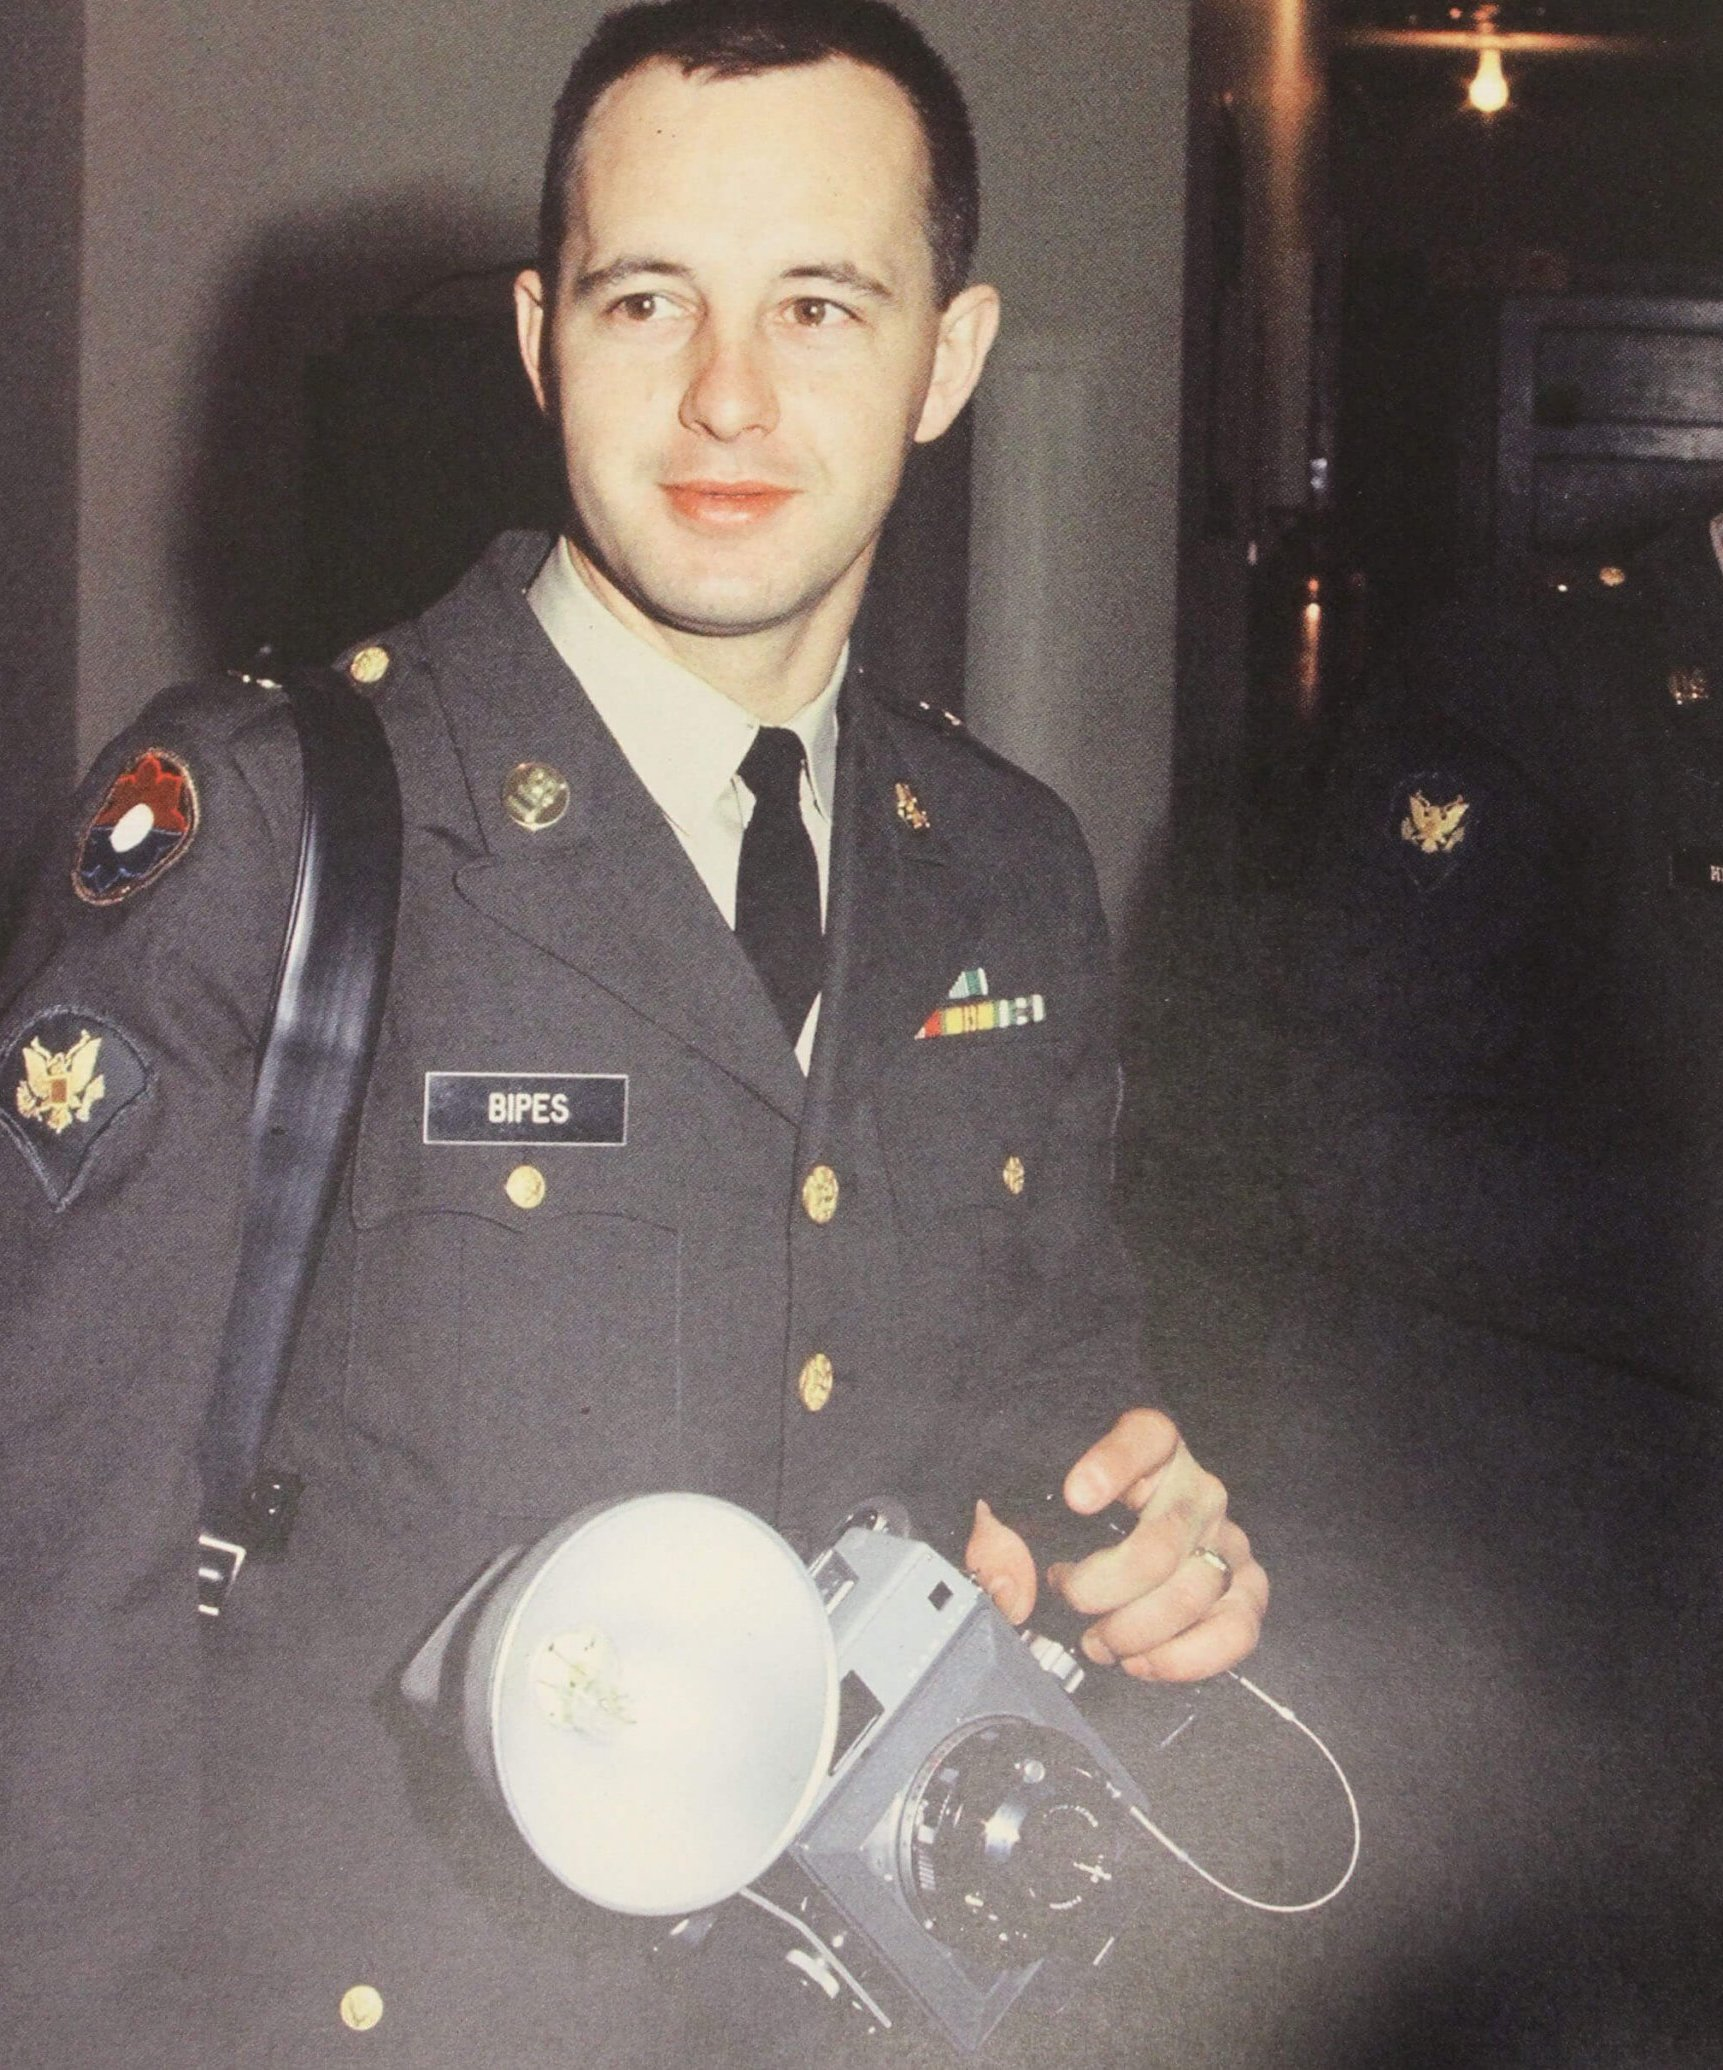 A young man in uniform with a camera in his hand.